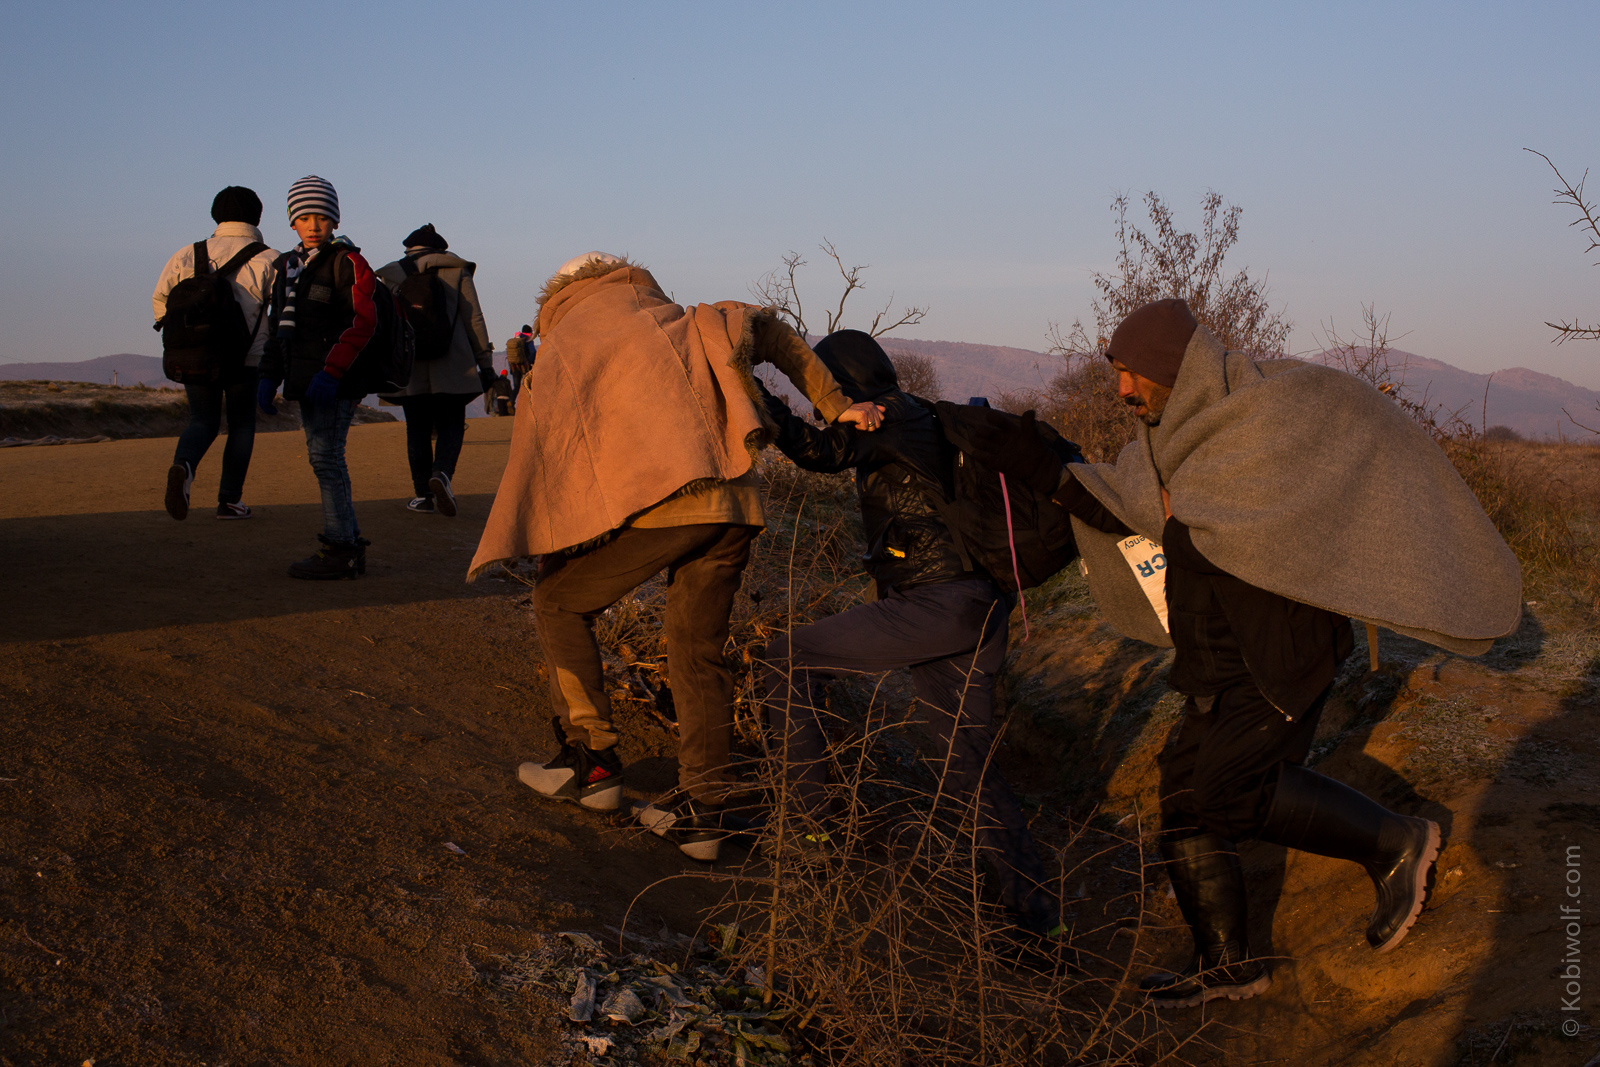 Syrian refugee make the harsh crossing from Macedonia to Serbia.